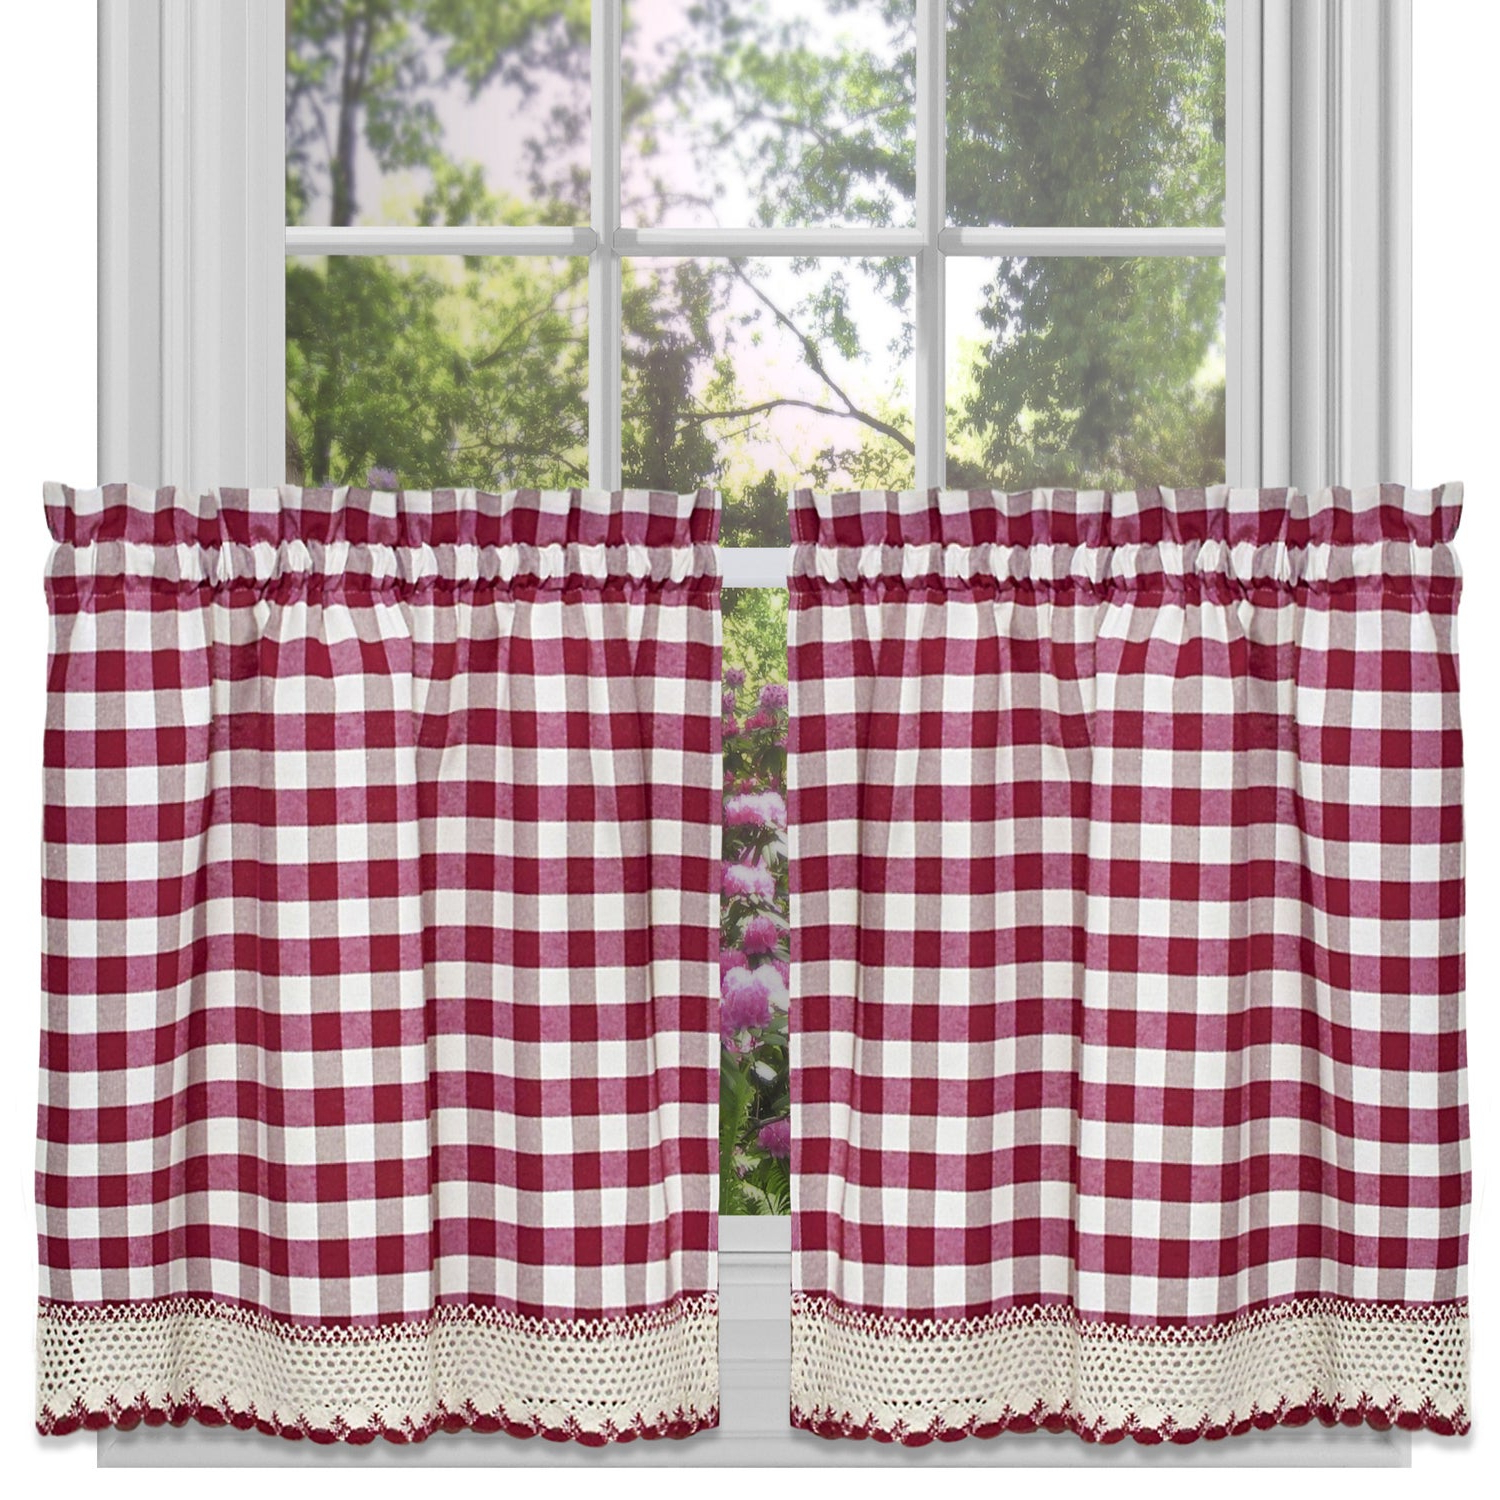 Widely Used Classic Buffalo Check Kitchen Burgundy/white Curtain Set Or Separates Inside Burgundy Cotton Blend Classic Checkered Decorative Window Curtains (View 17 of 20)